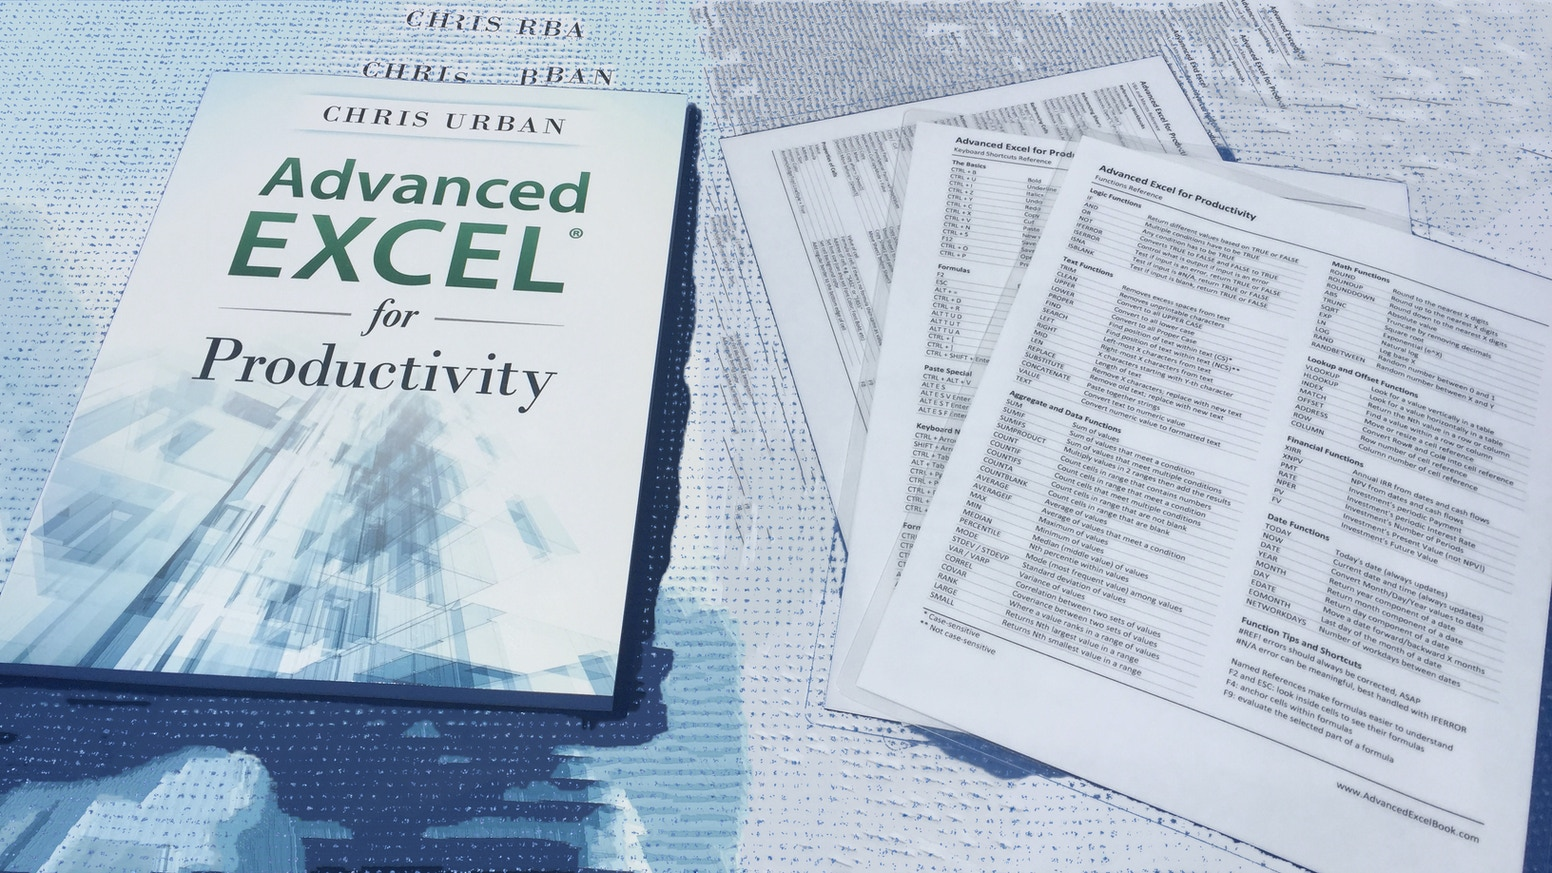 advanced excel book by chris urban kickstarter